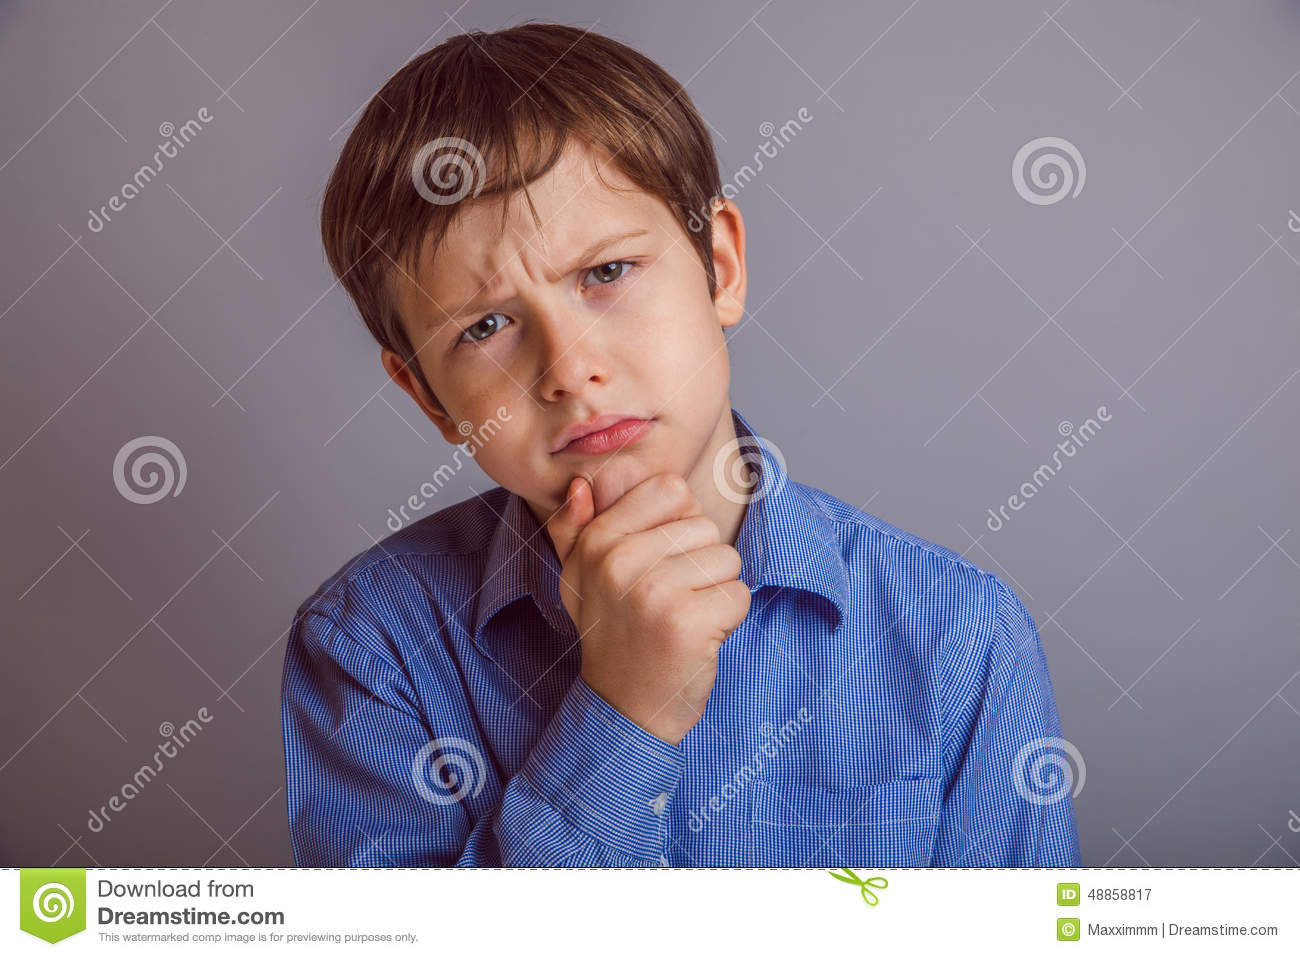 A Boy Of 10 Years Of European Appearance Naked Stock Image